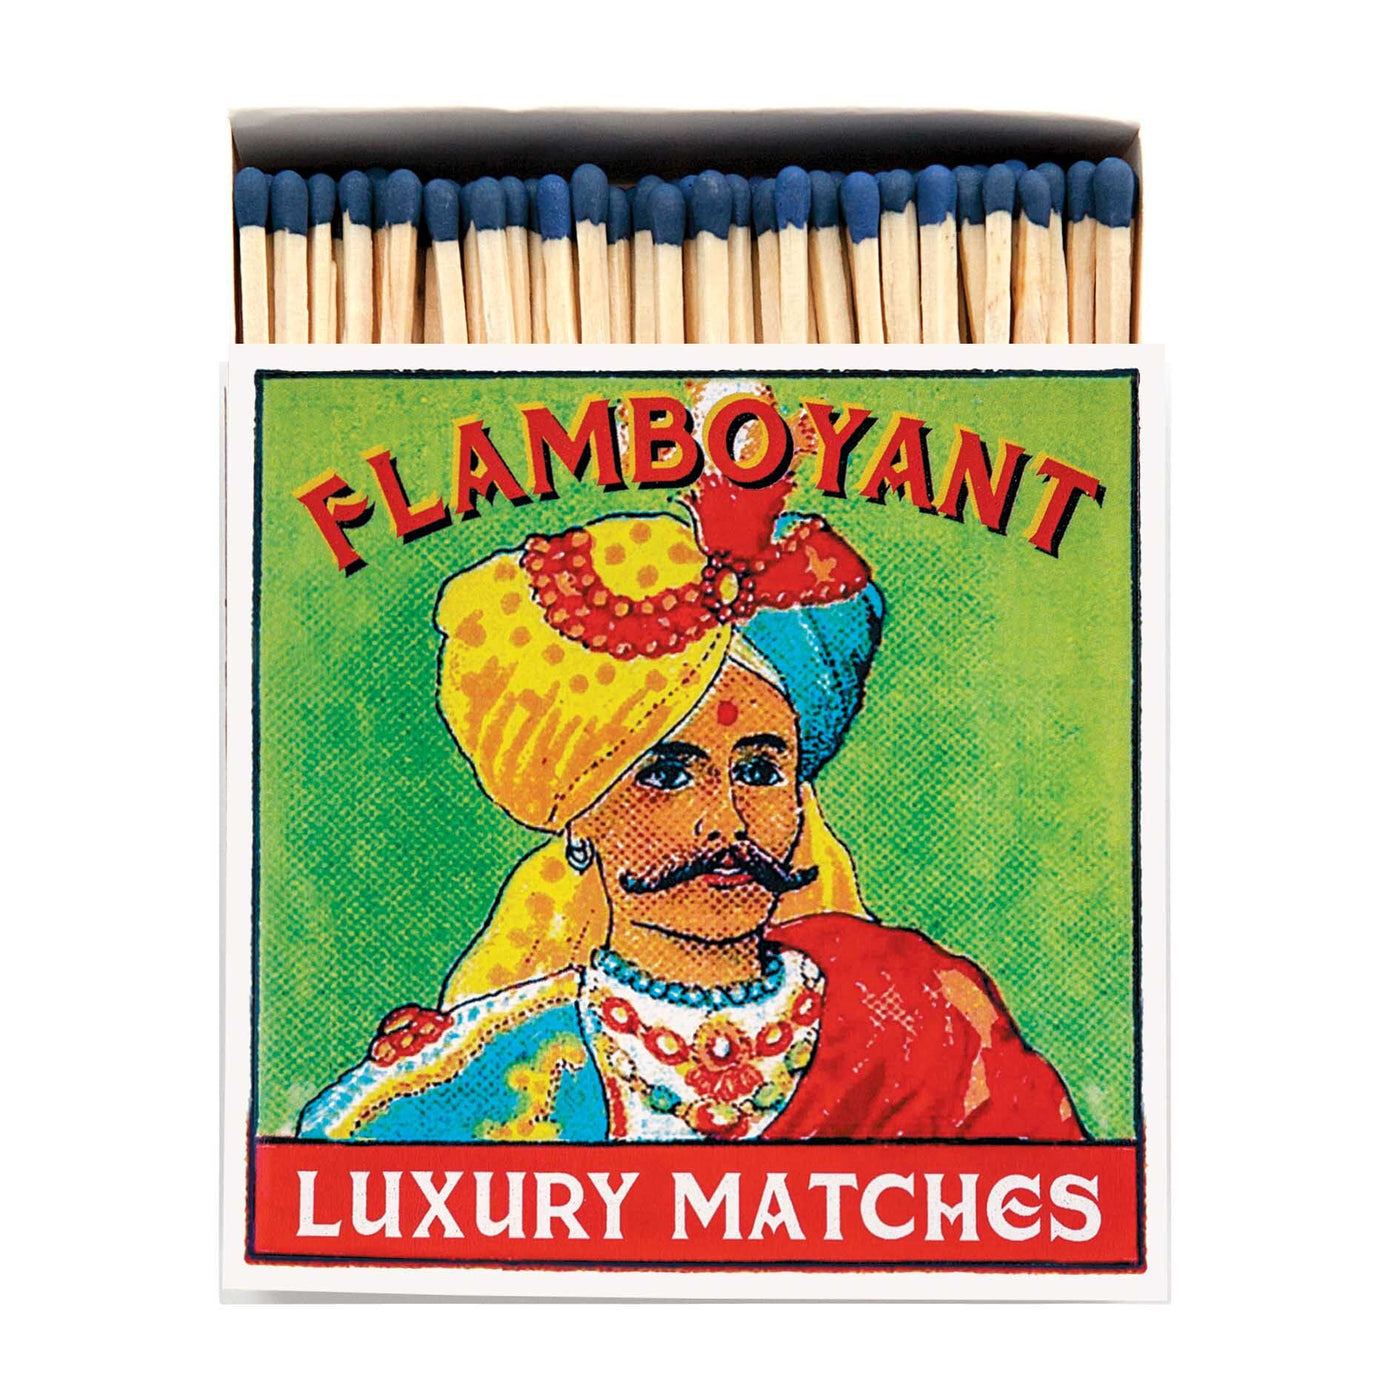 The Flamboyant Matchbox